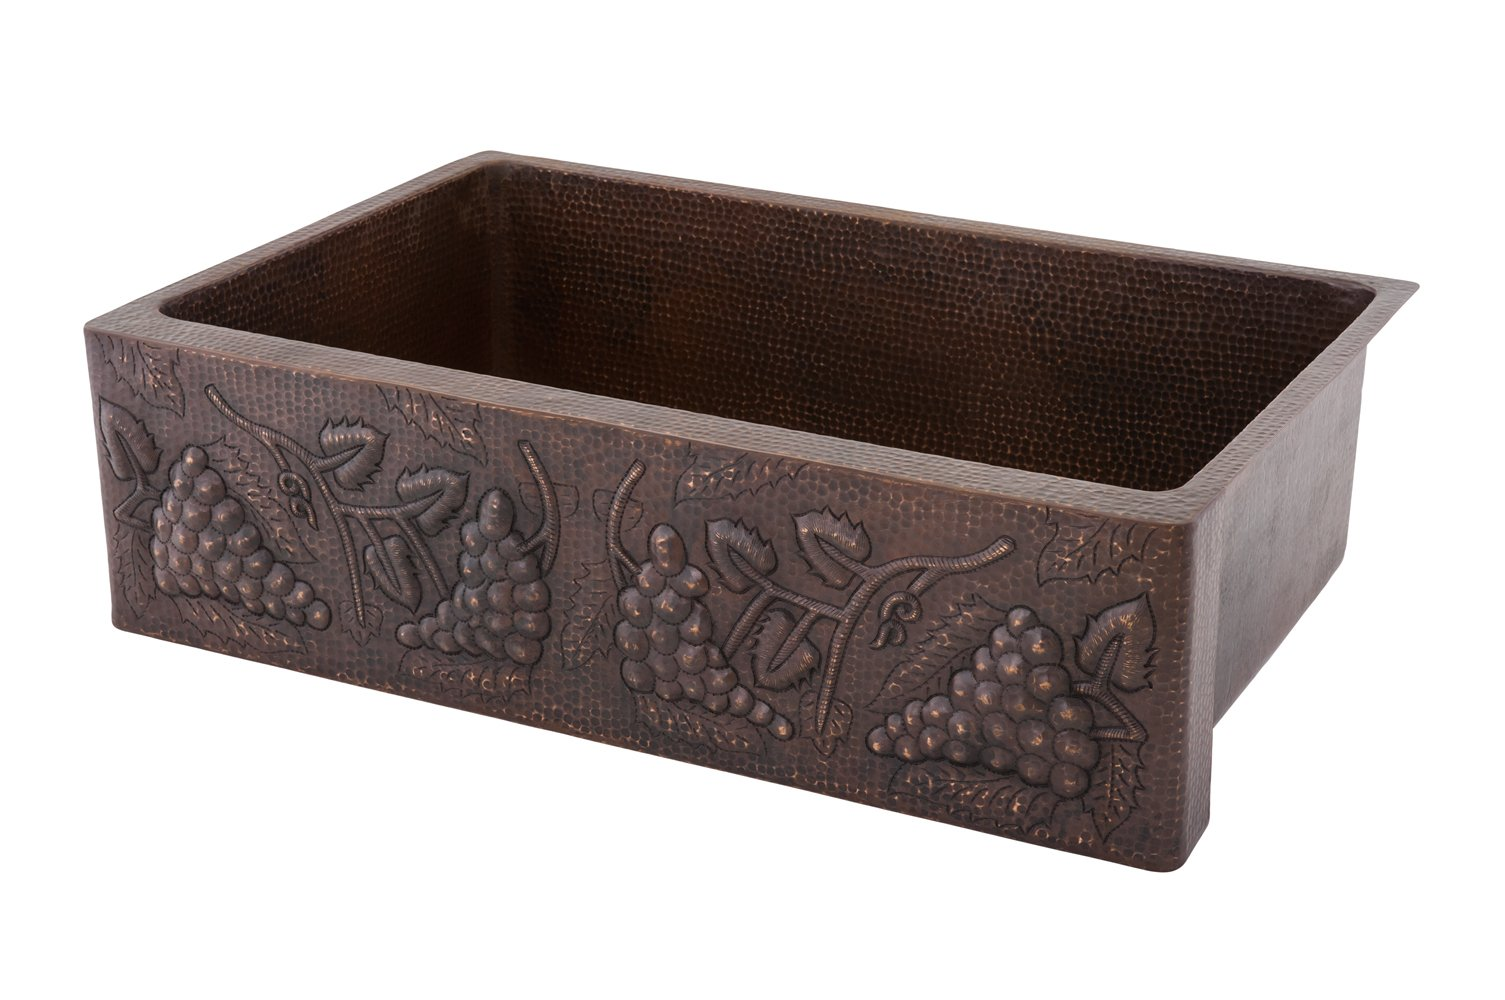 Premier Copper Products KASDB33229G 33-Inch Hammered Copper Kitchen Apron Single Basin Sink with Vineyard Design, Oil Rubbed Bronze by Premier Copper Products